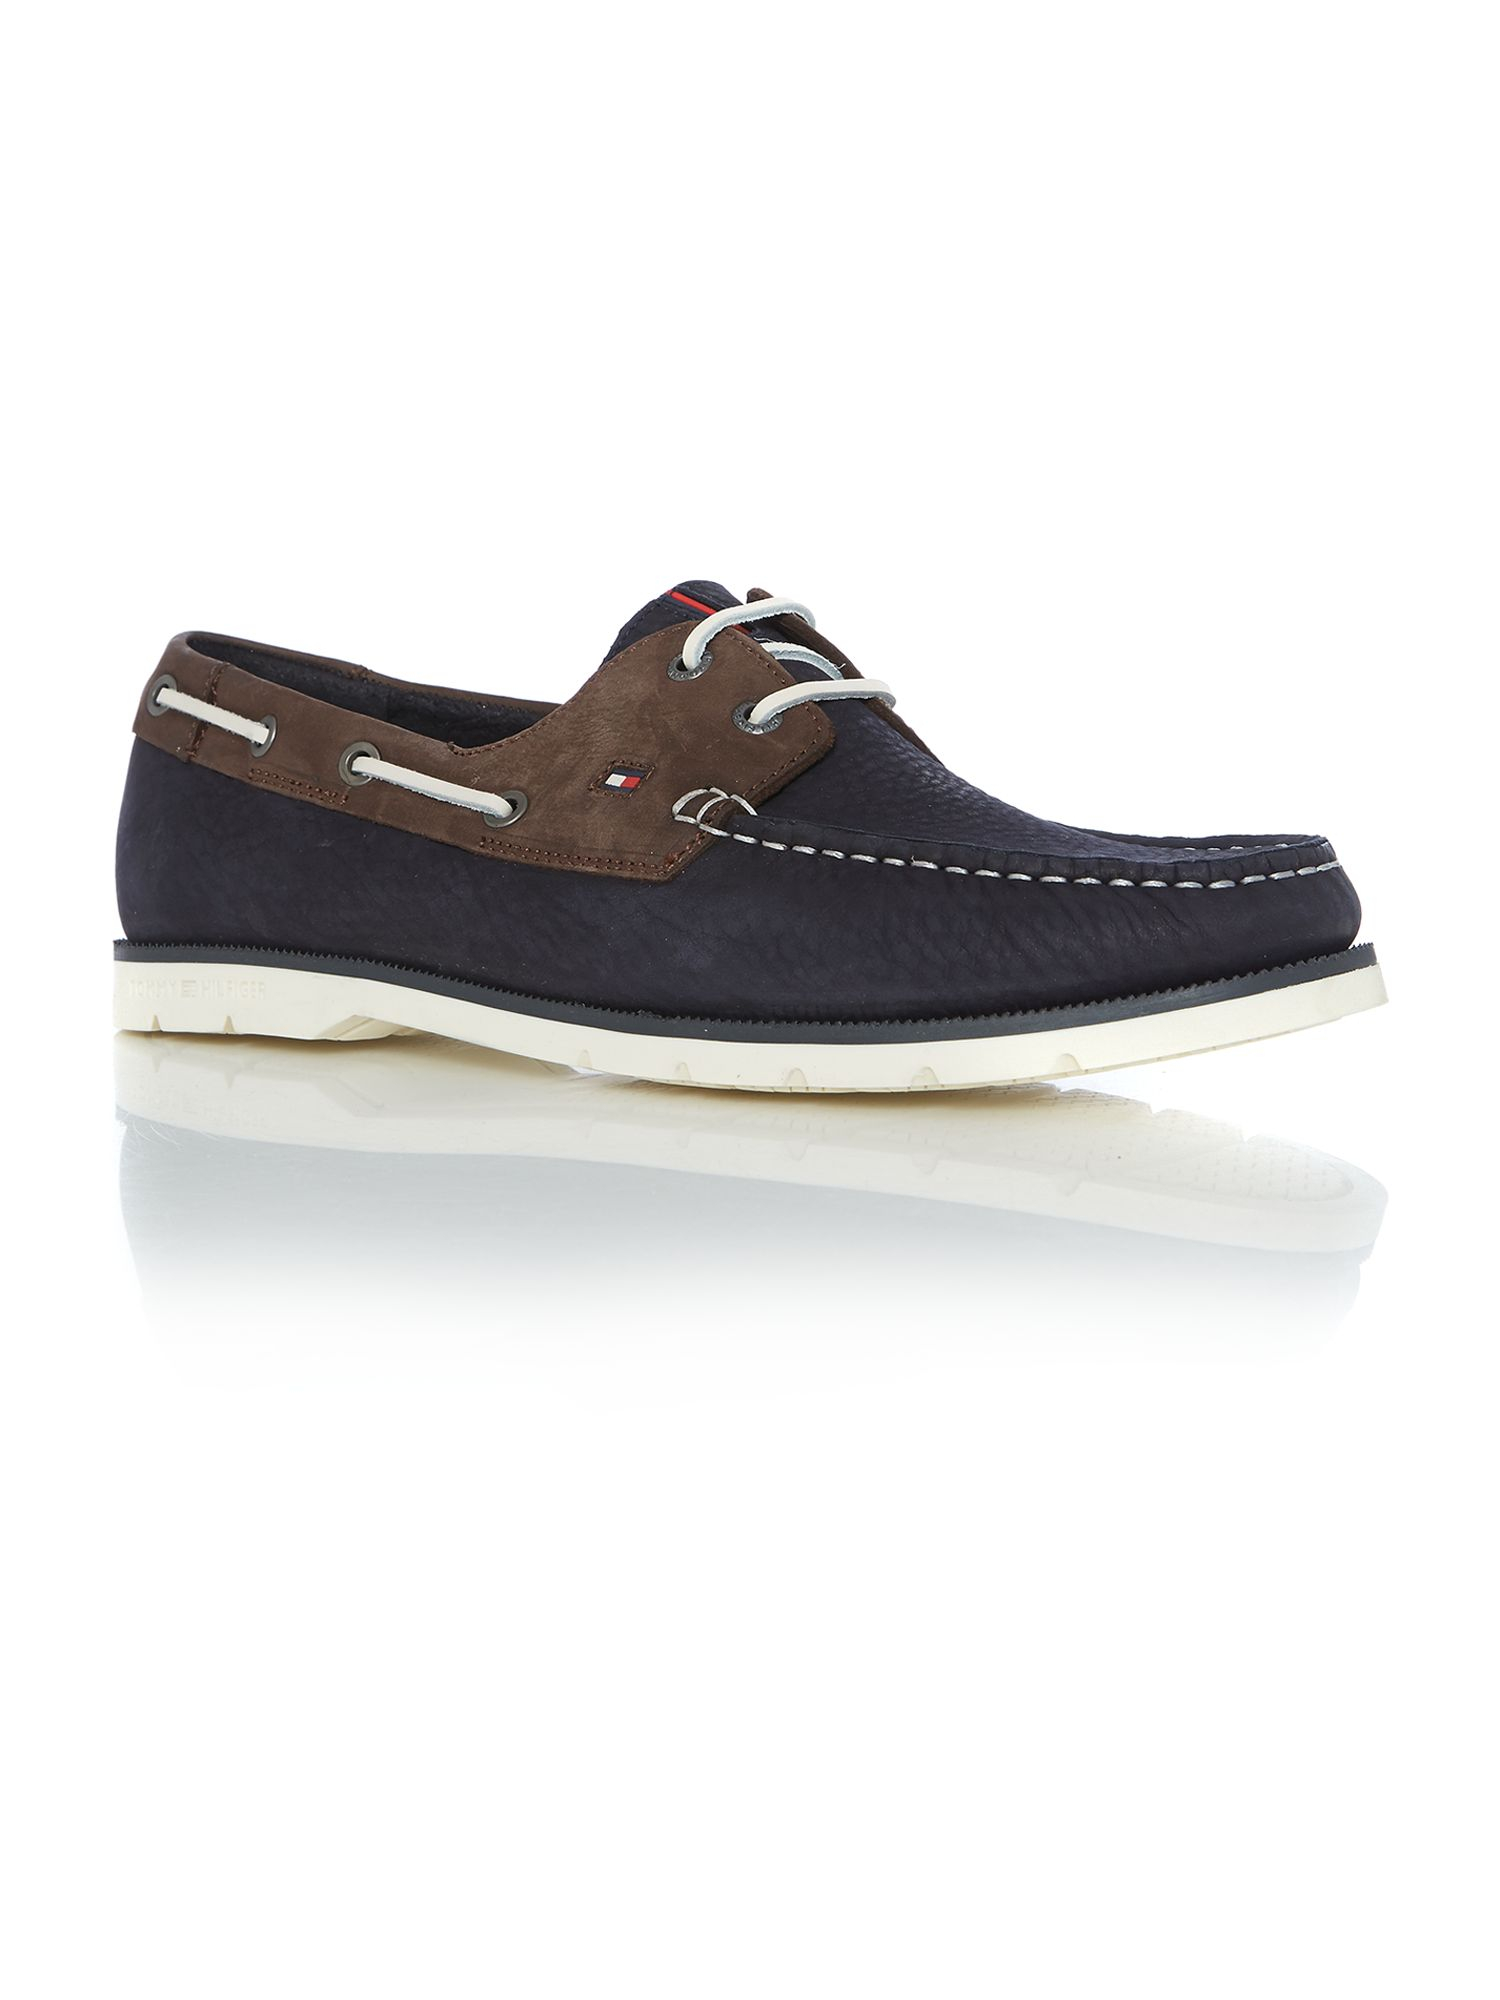 hilfiger cain lace up casual boat shoes in blue for